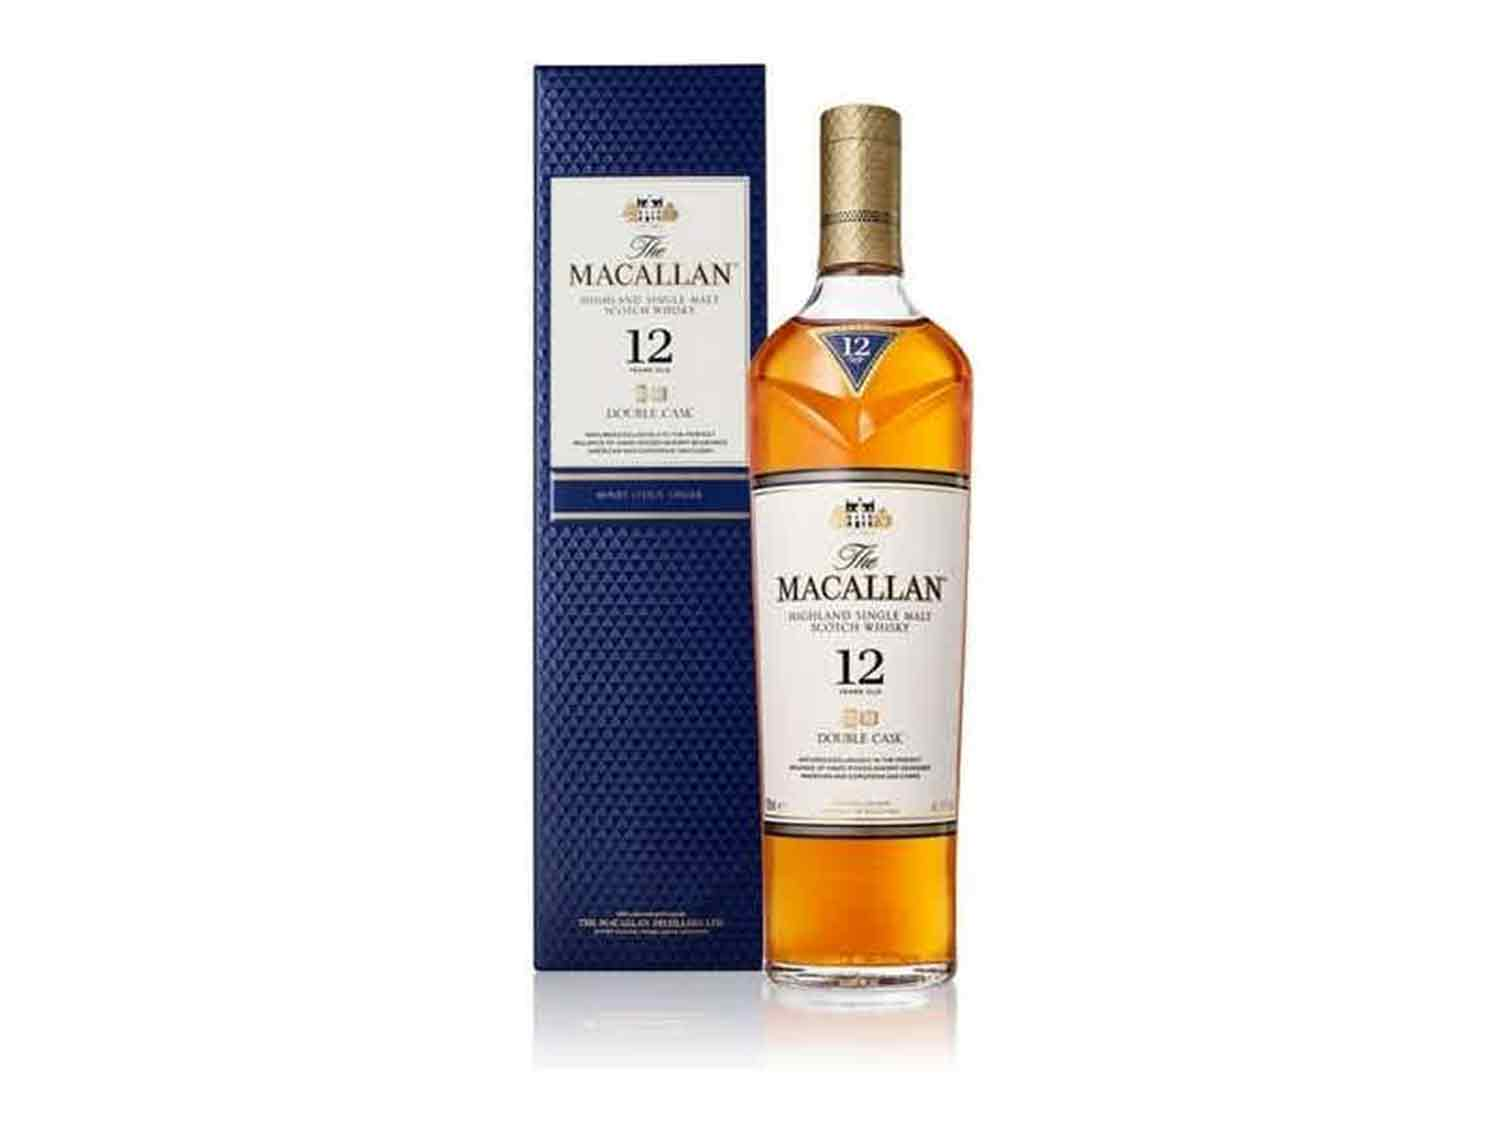 Scotch Whisky (Unpeated): The Macallan Double Cask 12 Year